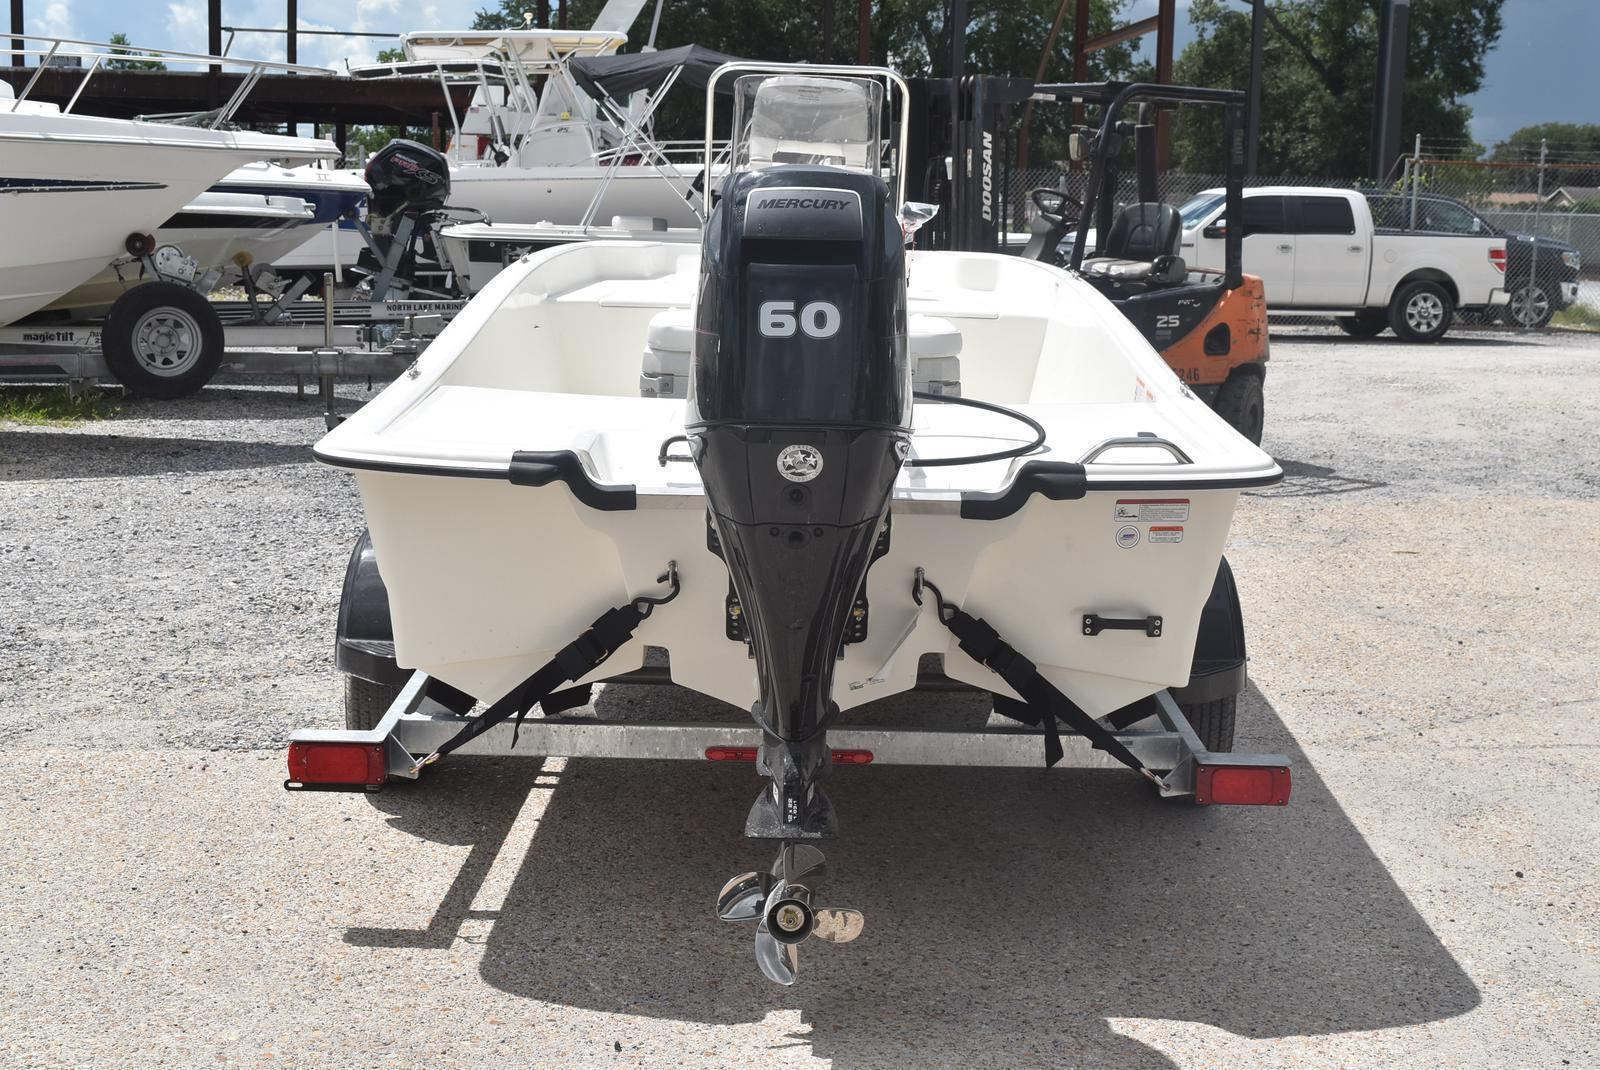 2020 Mako boat for sale, model of the boat is Pro Skiff 17, 75 ELPT & Image # 590 of 702